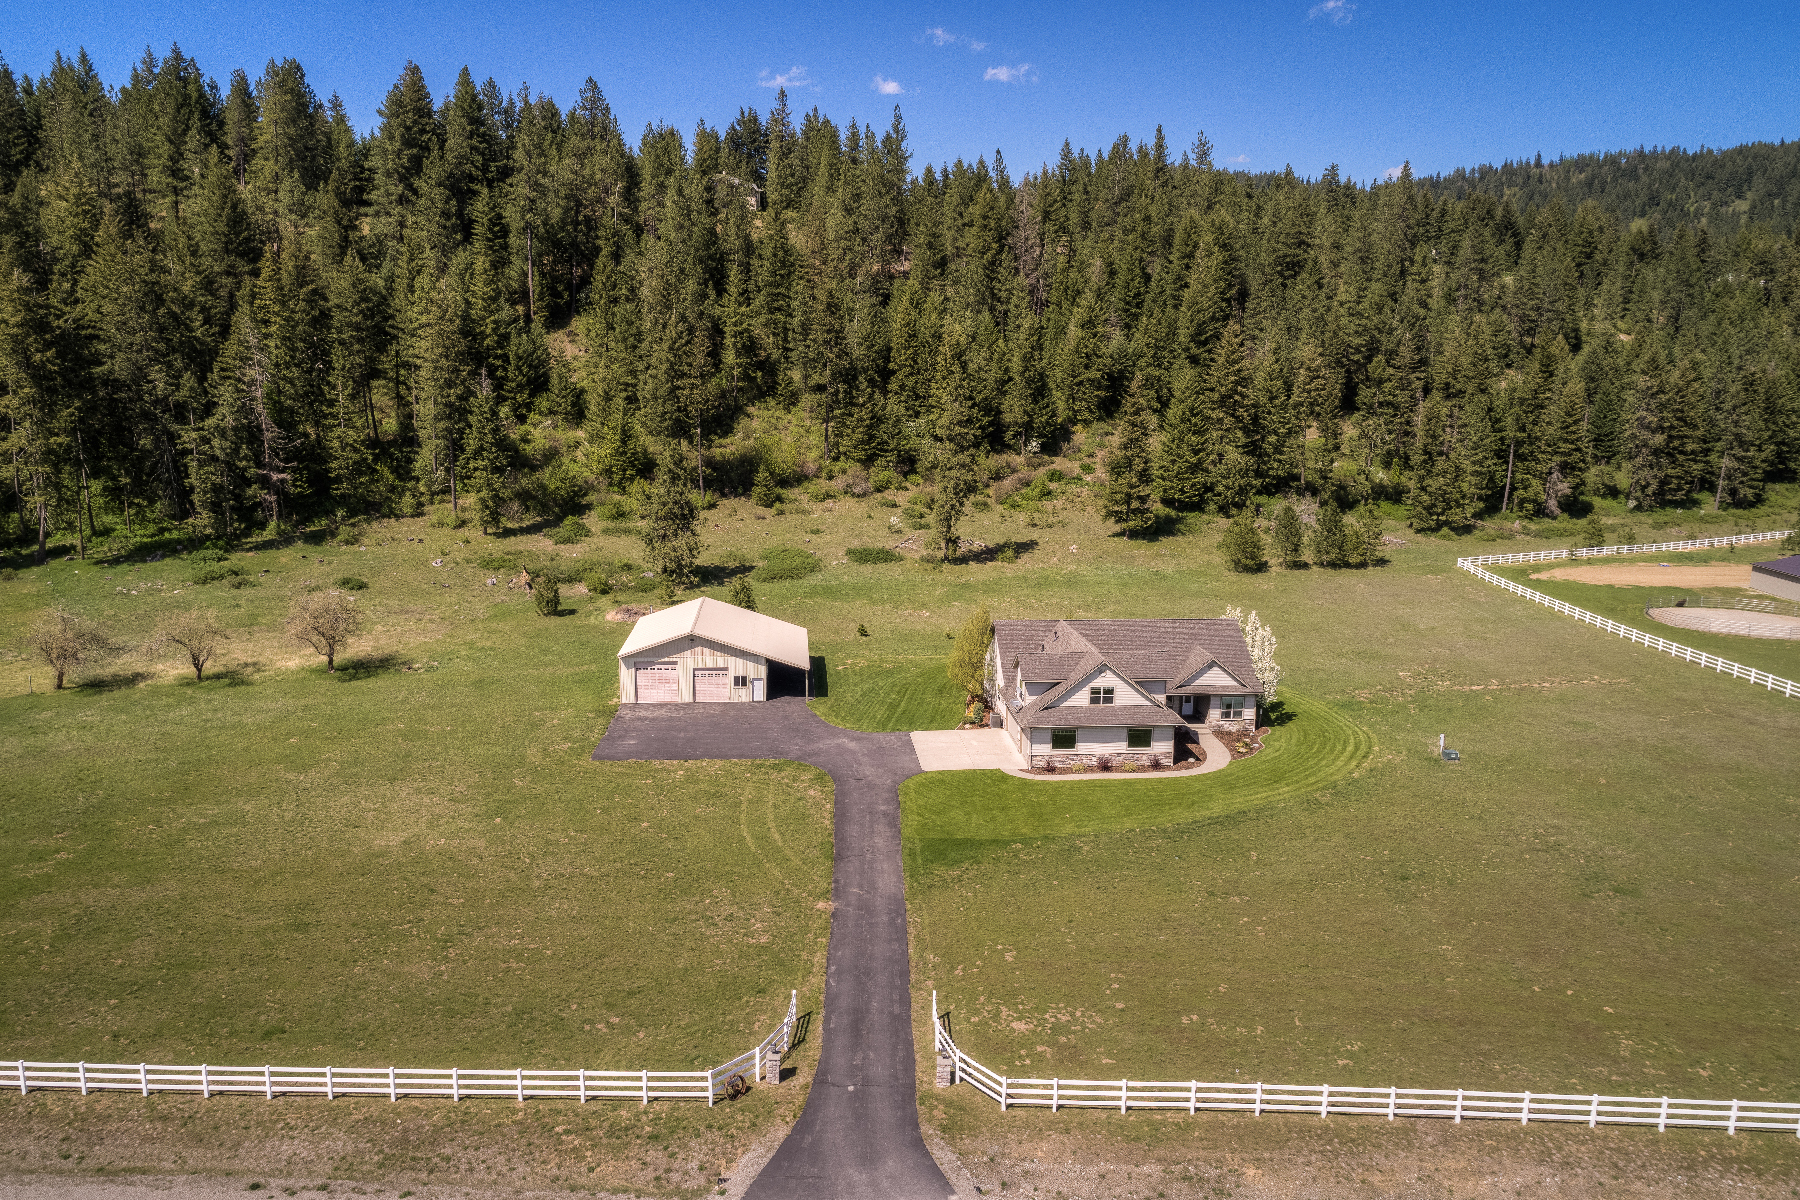 Single Family Home for Active at Elkhorn Ranch Estates 22934 N Ranch View Rathdrum, Idaho 83858 United States